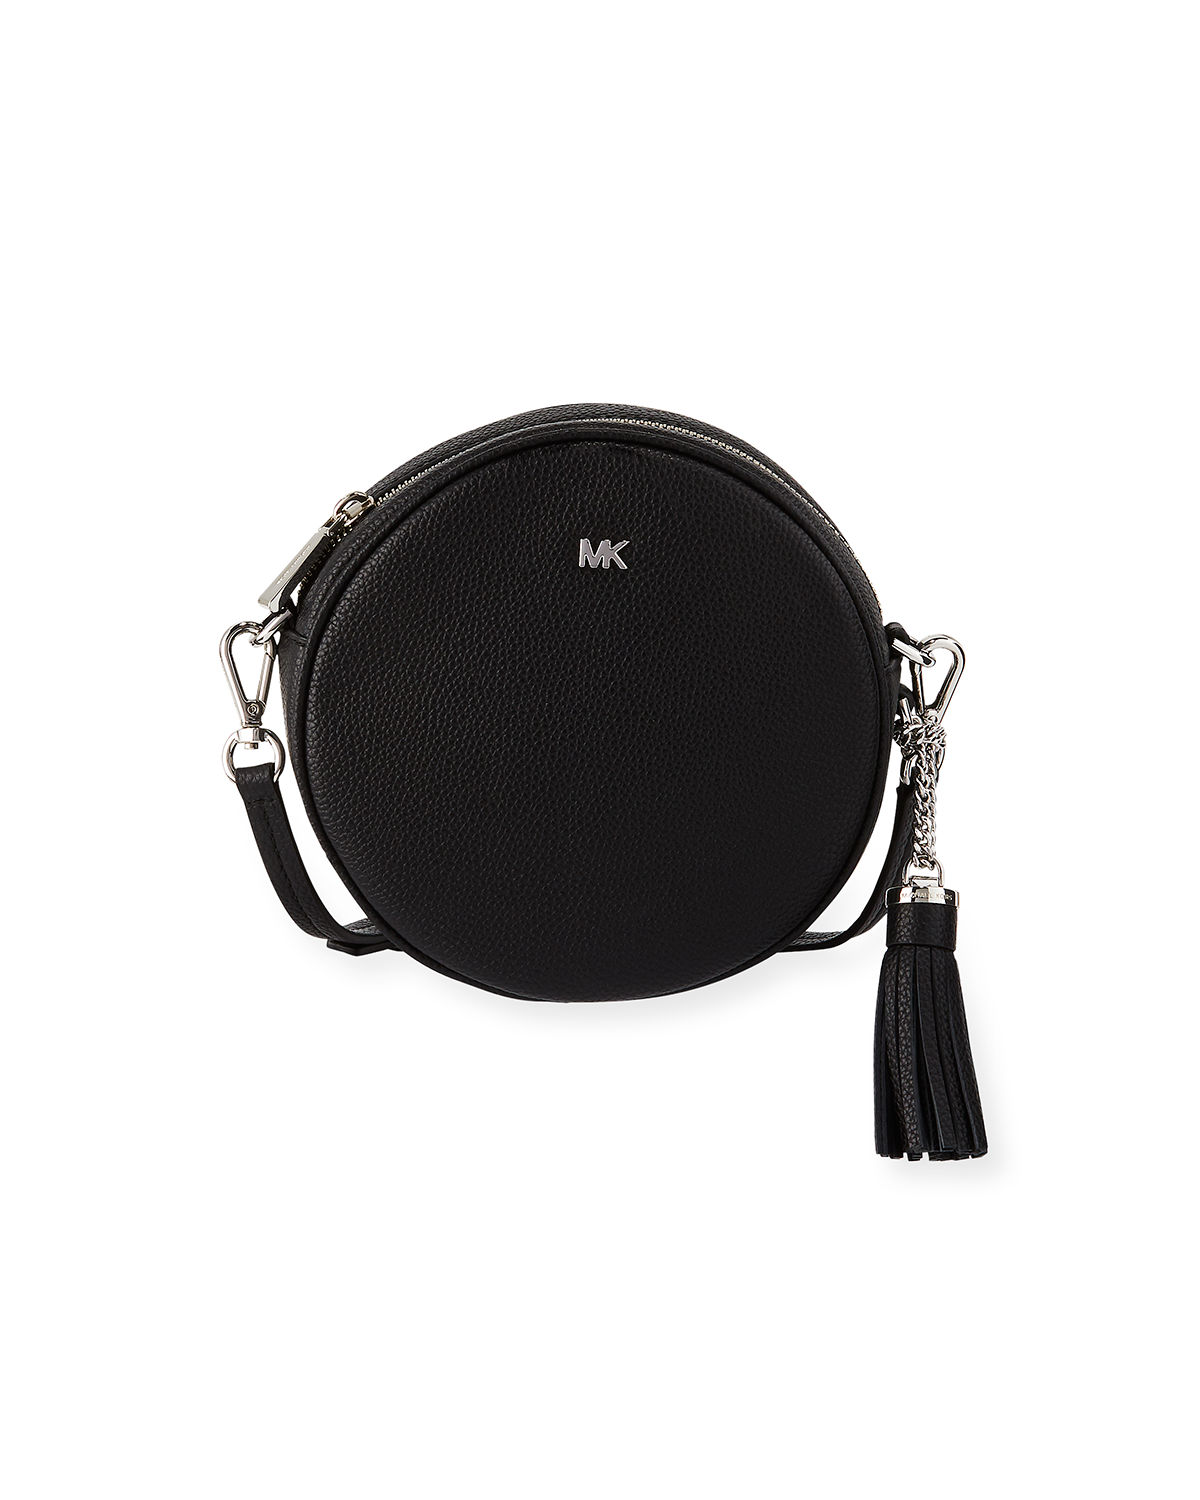 Canteen Medium Round Leather Crossbody Bag - Silvertone Hardware